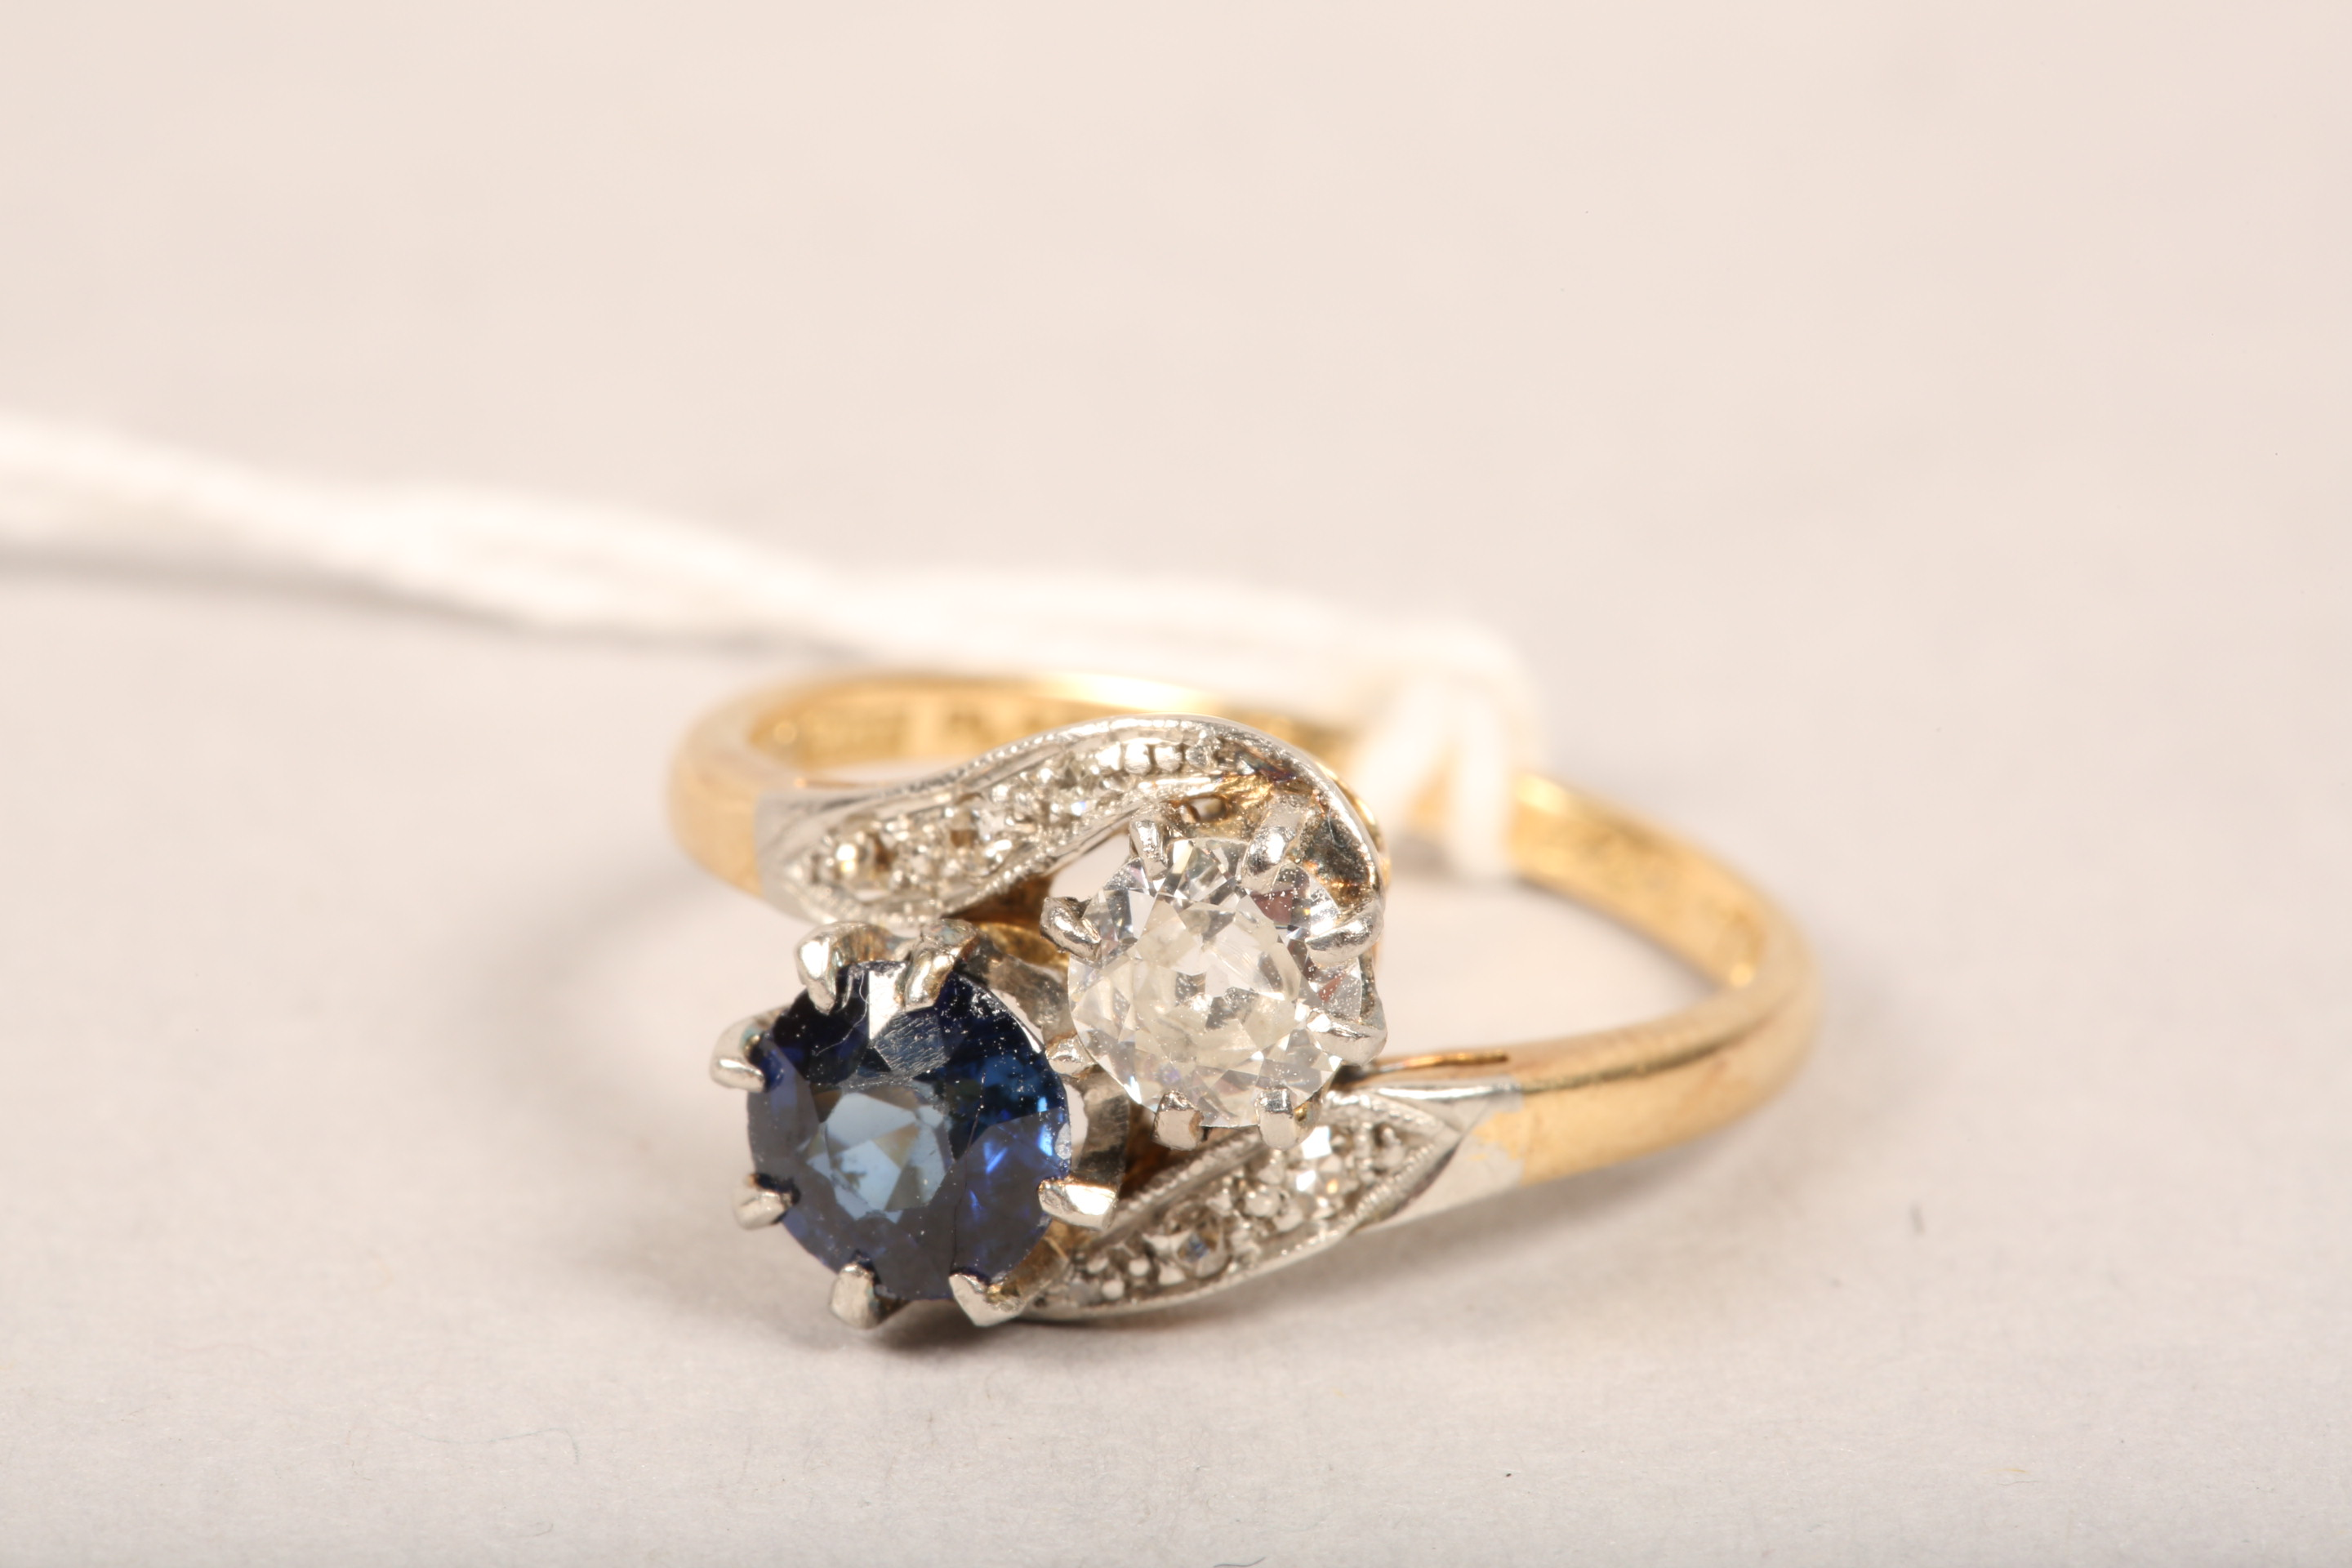 Ladies 18 carat gold diamond and sapphire ring, 0.33 diamond and 0.5 sapphire in twist setting, - Image 6 of 8